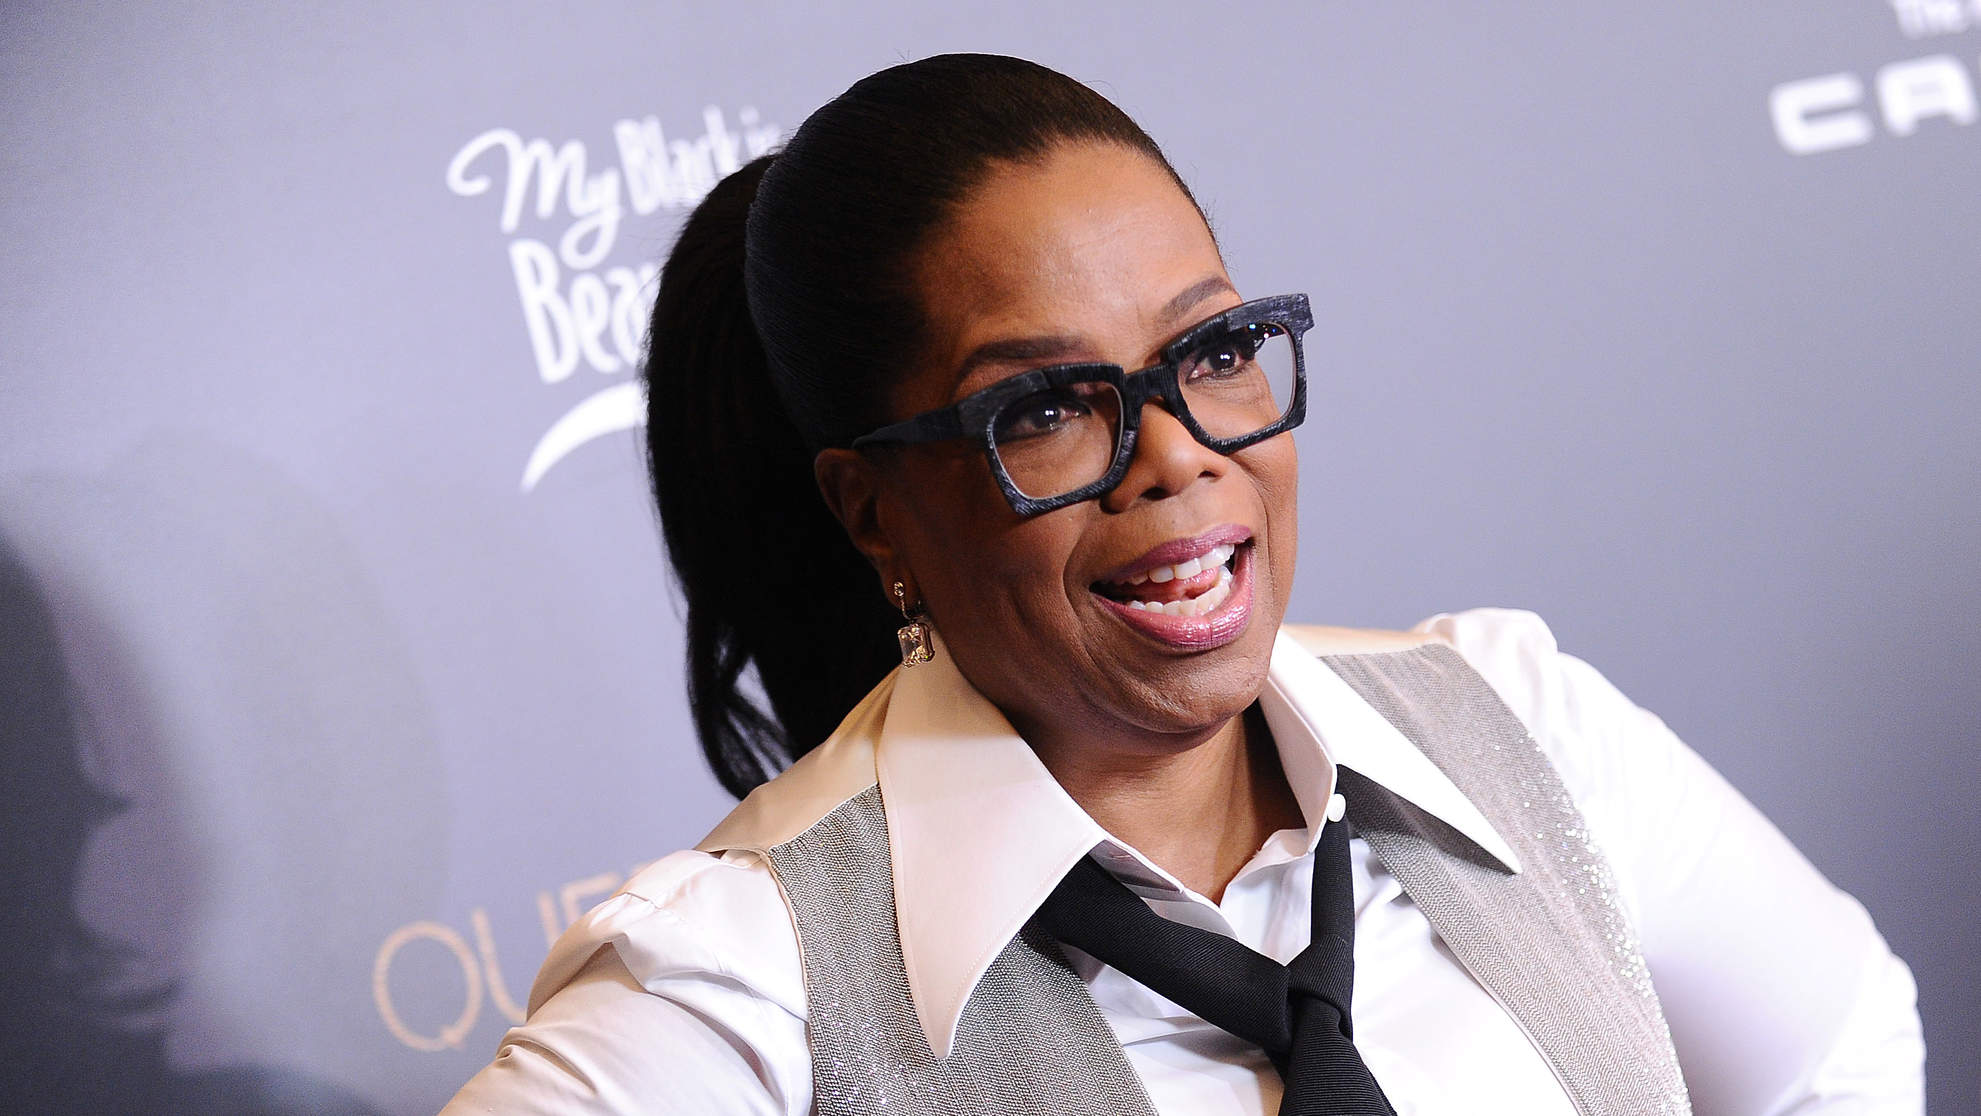 6 Times Oprah Inspired Us During Her Golden Globes Acceptance Speech